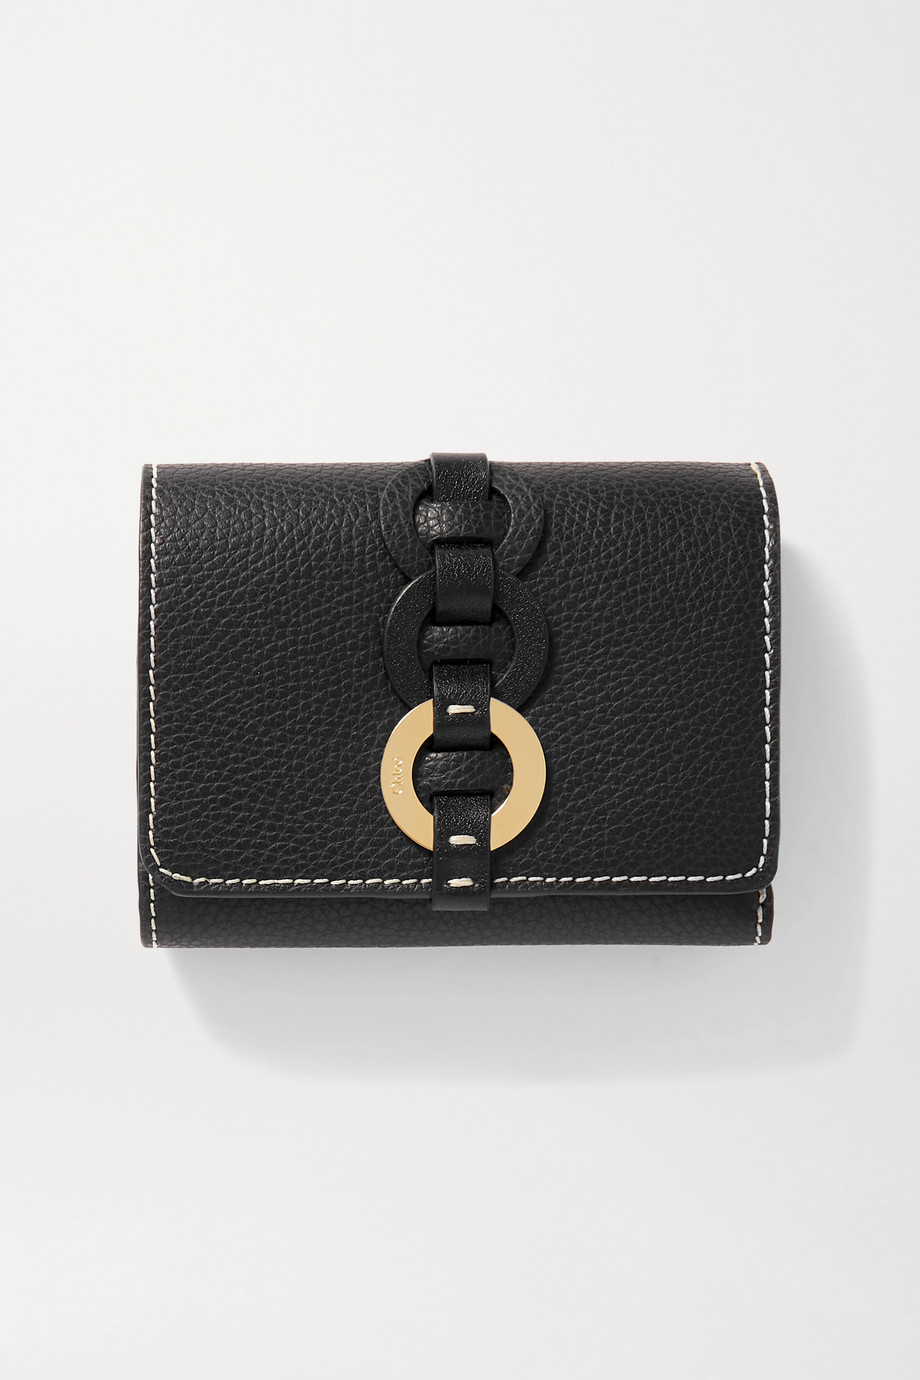 Chloé Darryl textured-leather wallet